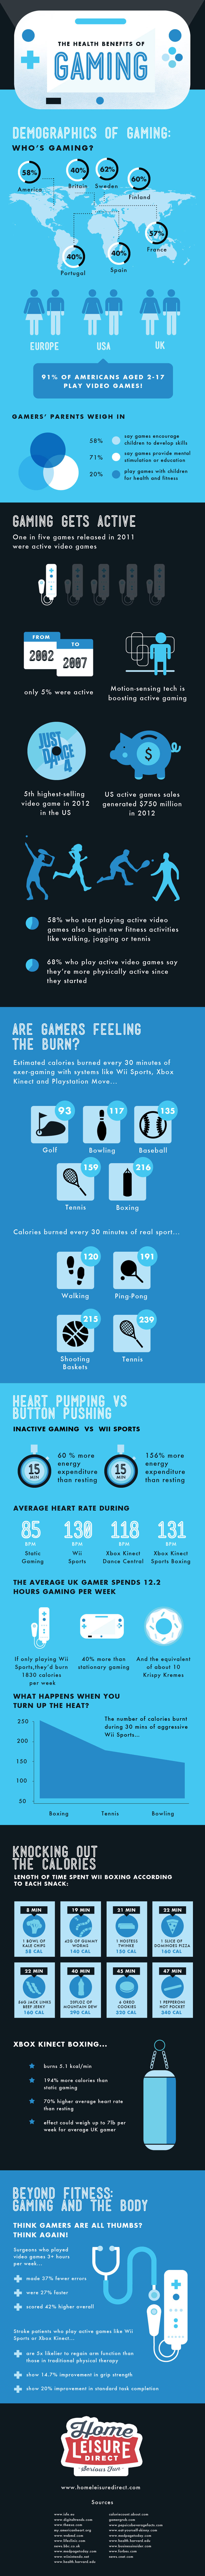 11593-Health-Gaming-Infographic